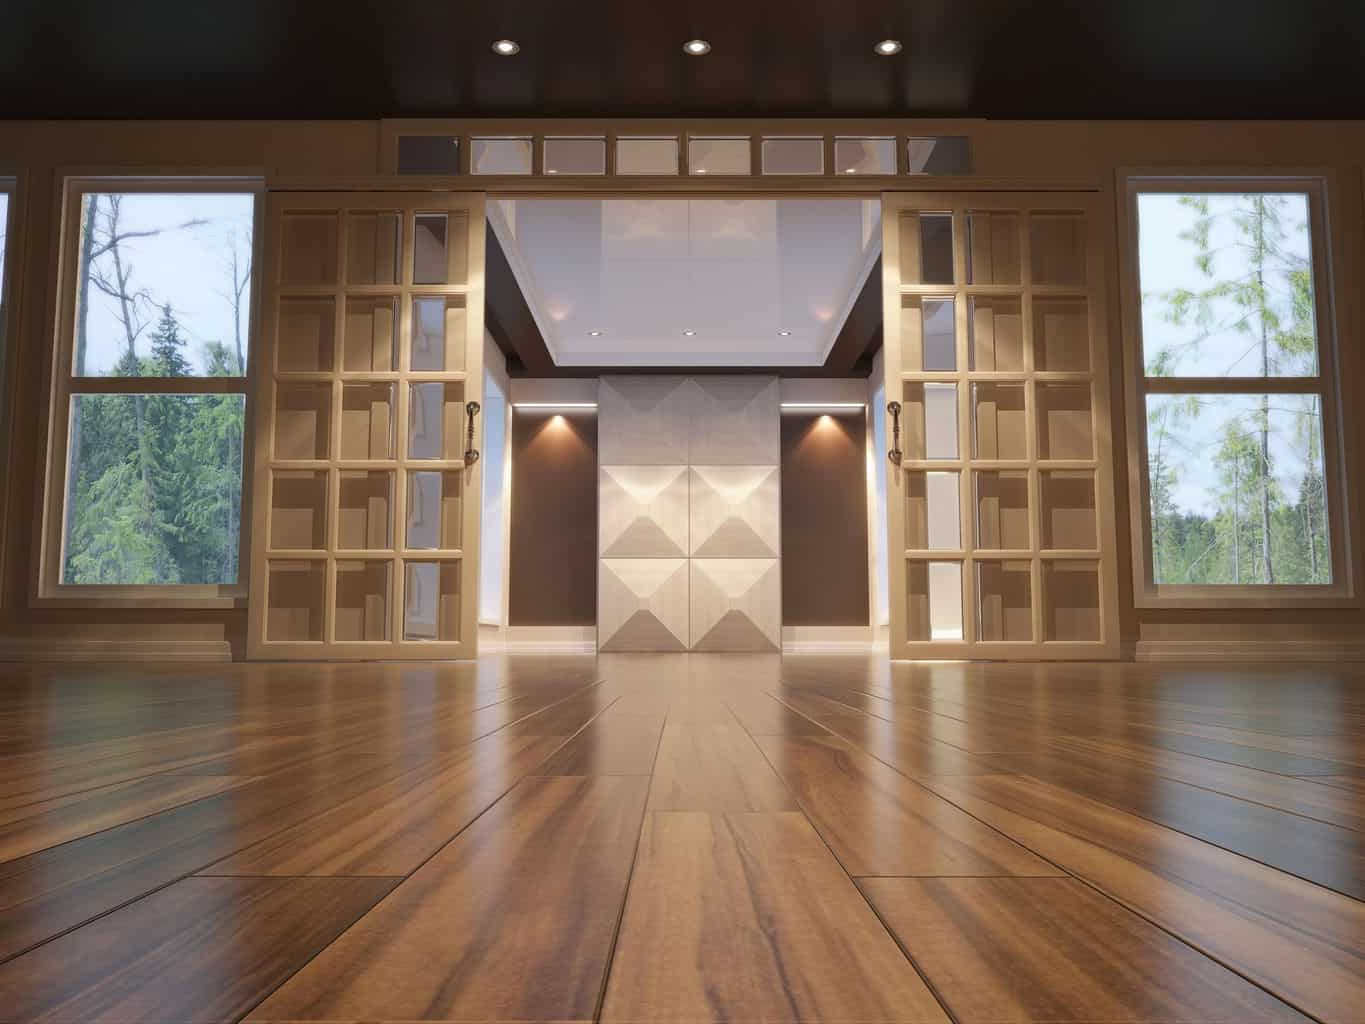 The 5 most common hardwood floor colors the flooring lady for Hardwood floor color options